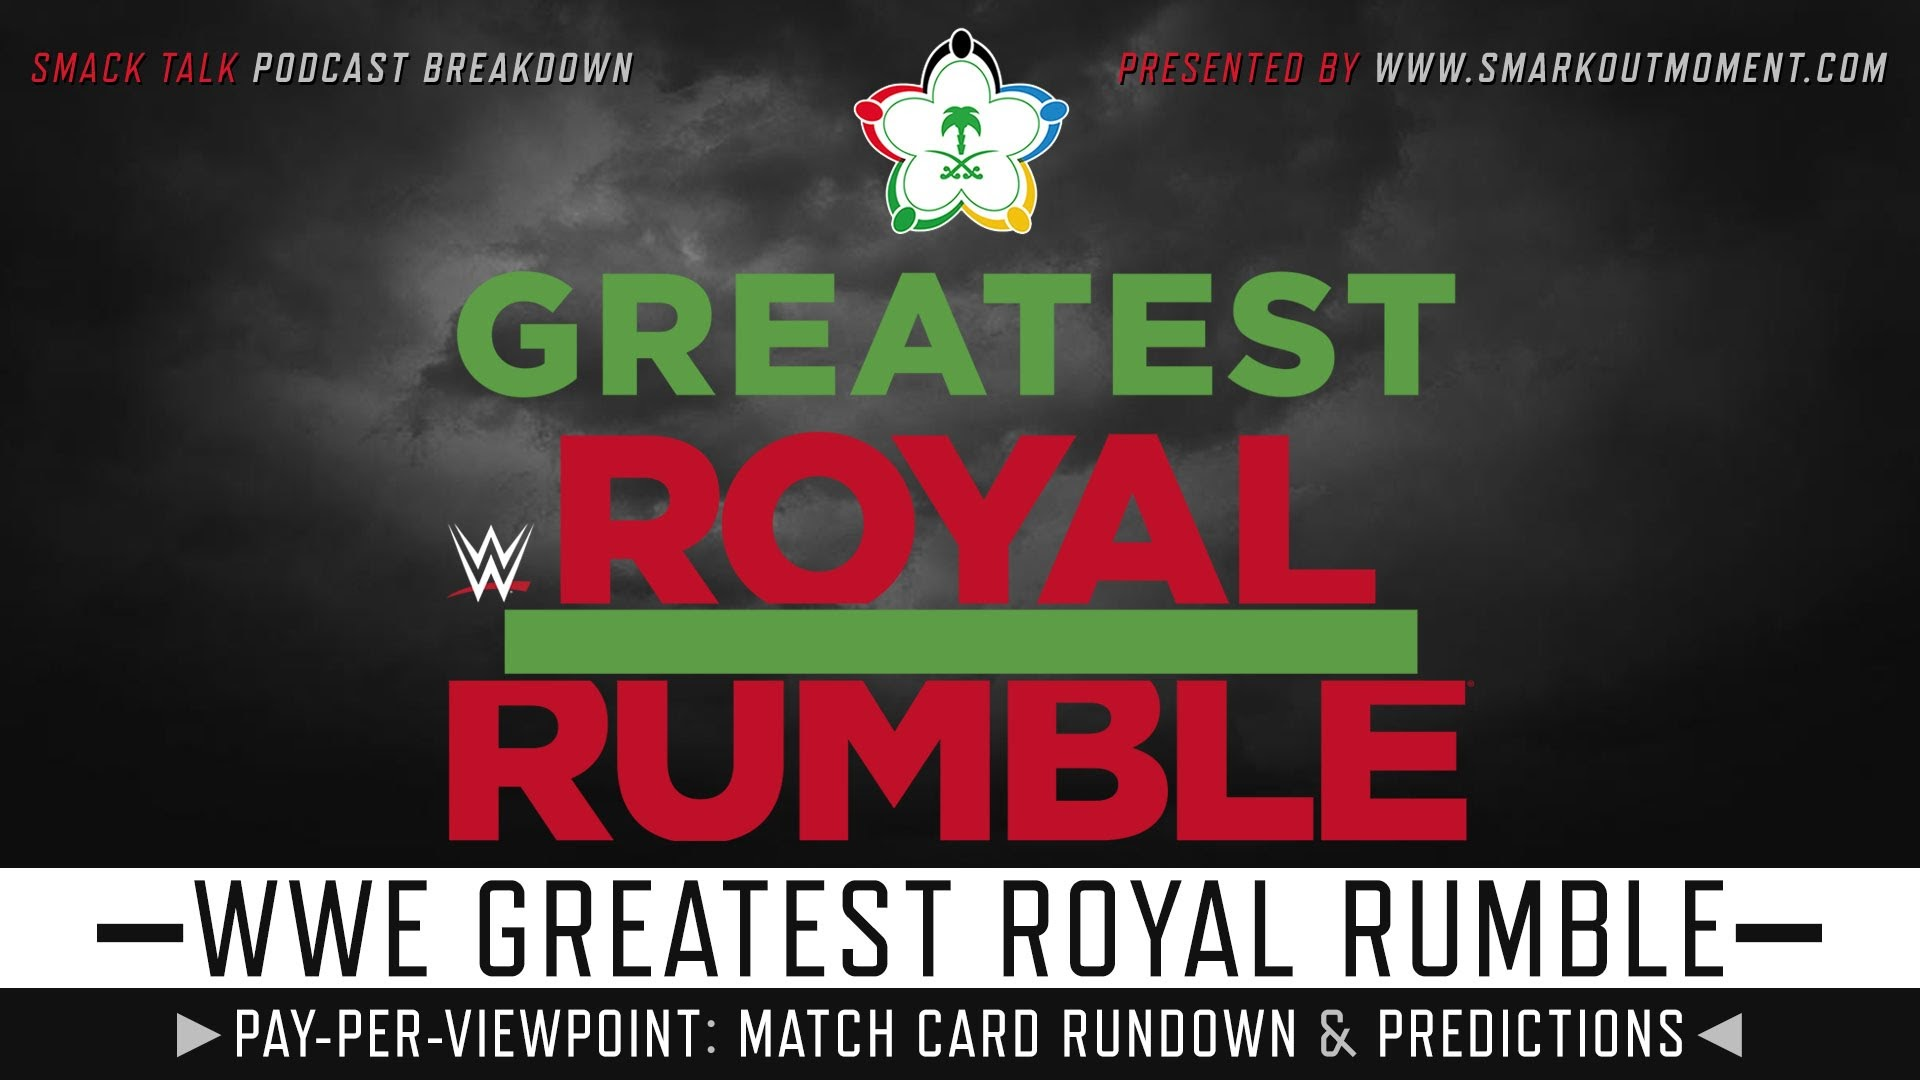 WWE Greatest Royal Rumble 2018 spoilers podcast